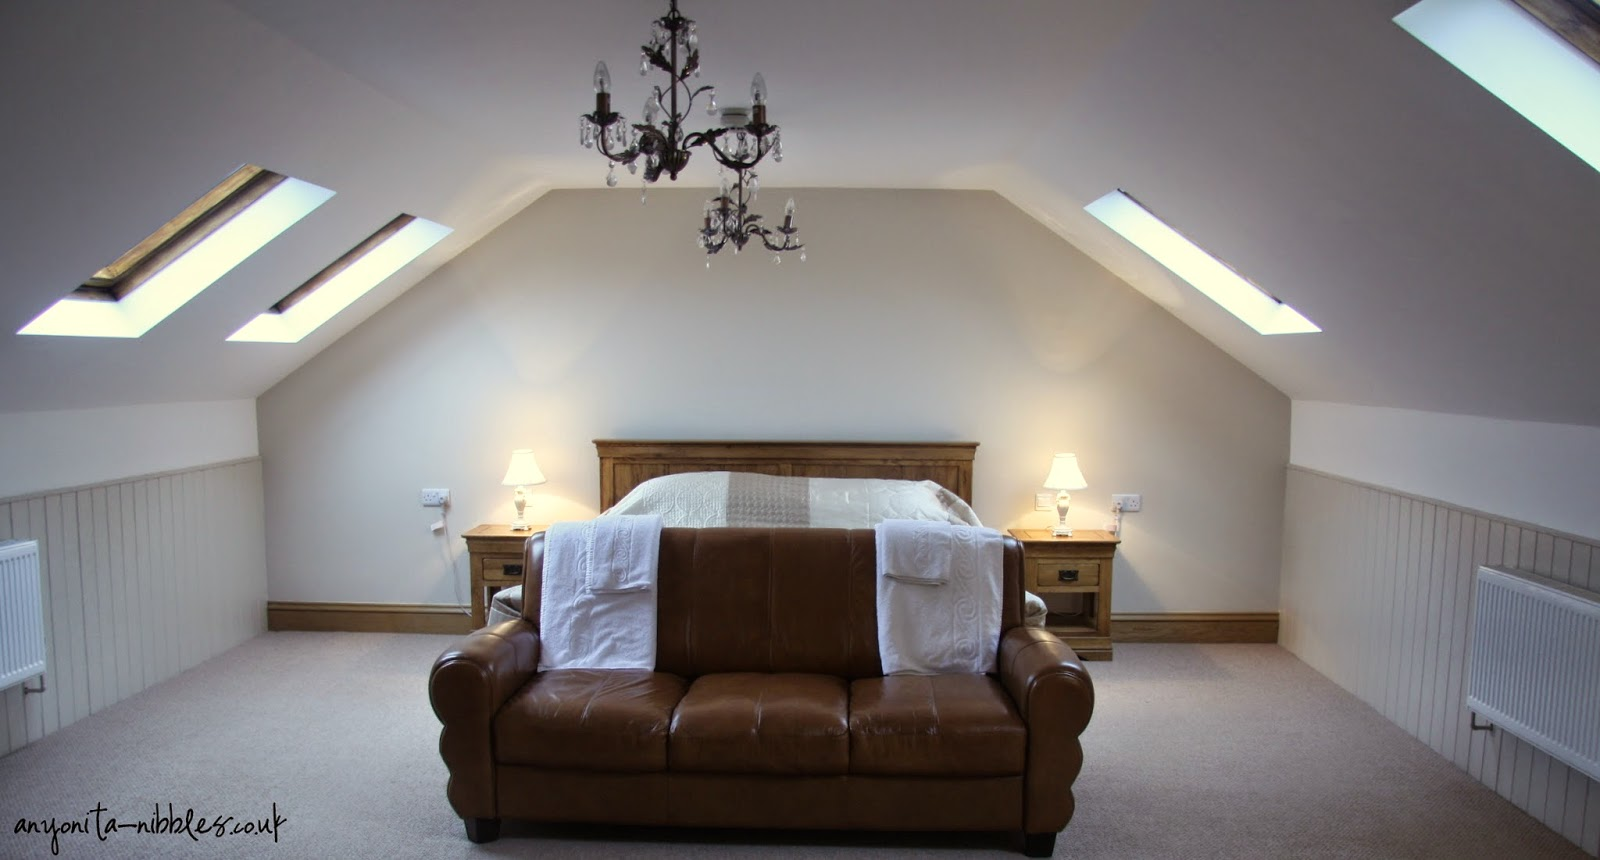 Our king-sized bedroom nestled in the North Yorkshire Moors| Anyonita-nibbles.co.uk